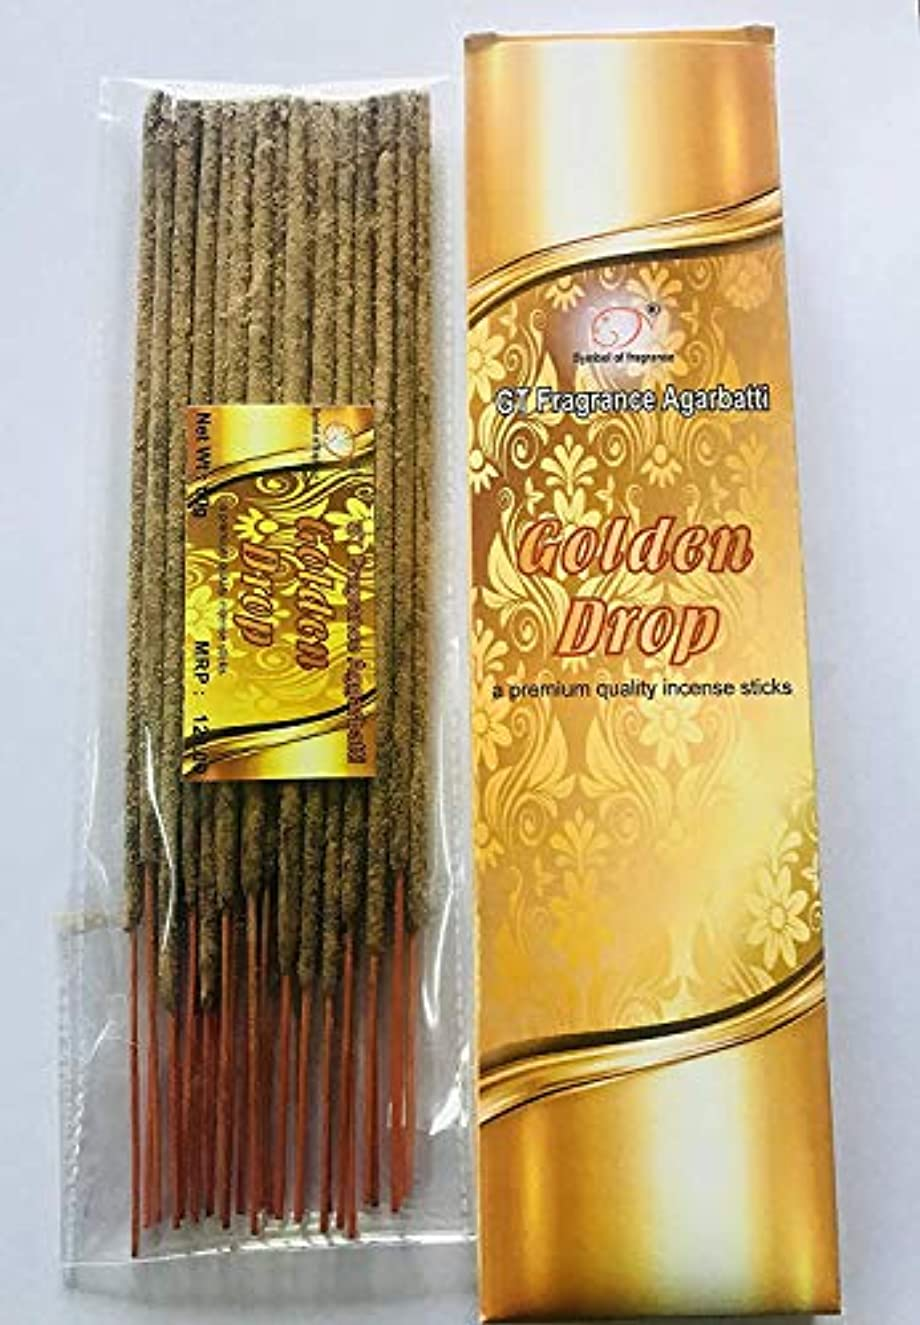 アクセサリー車七時半Golden Drop. Bundle of 2 Packs, a Premium Quality Incense sticks-100g